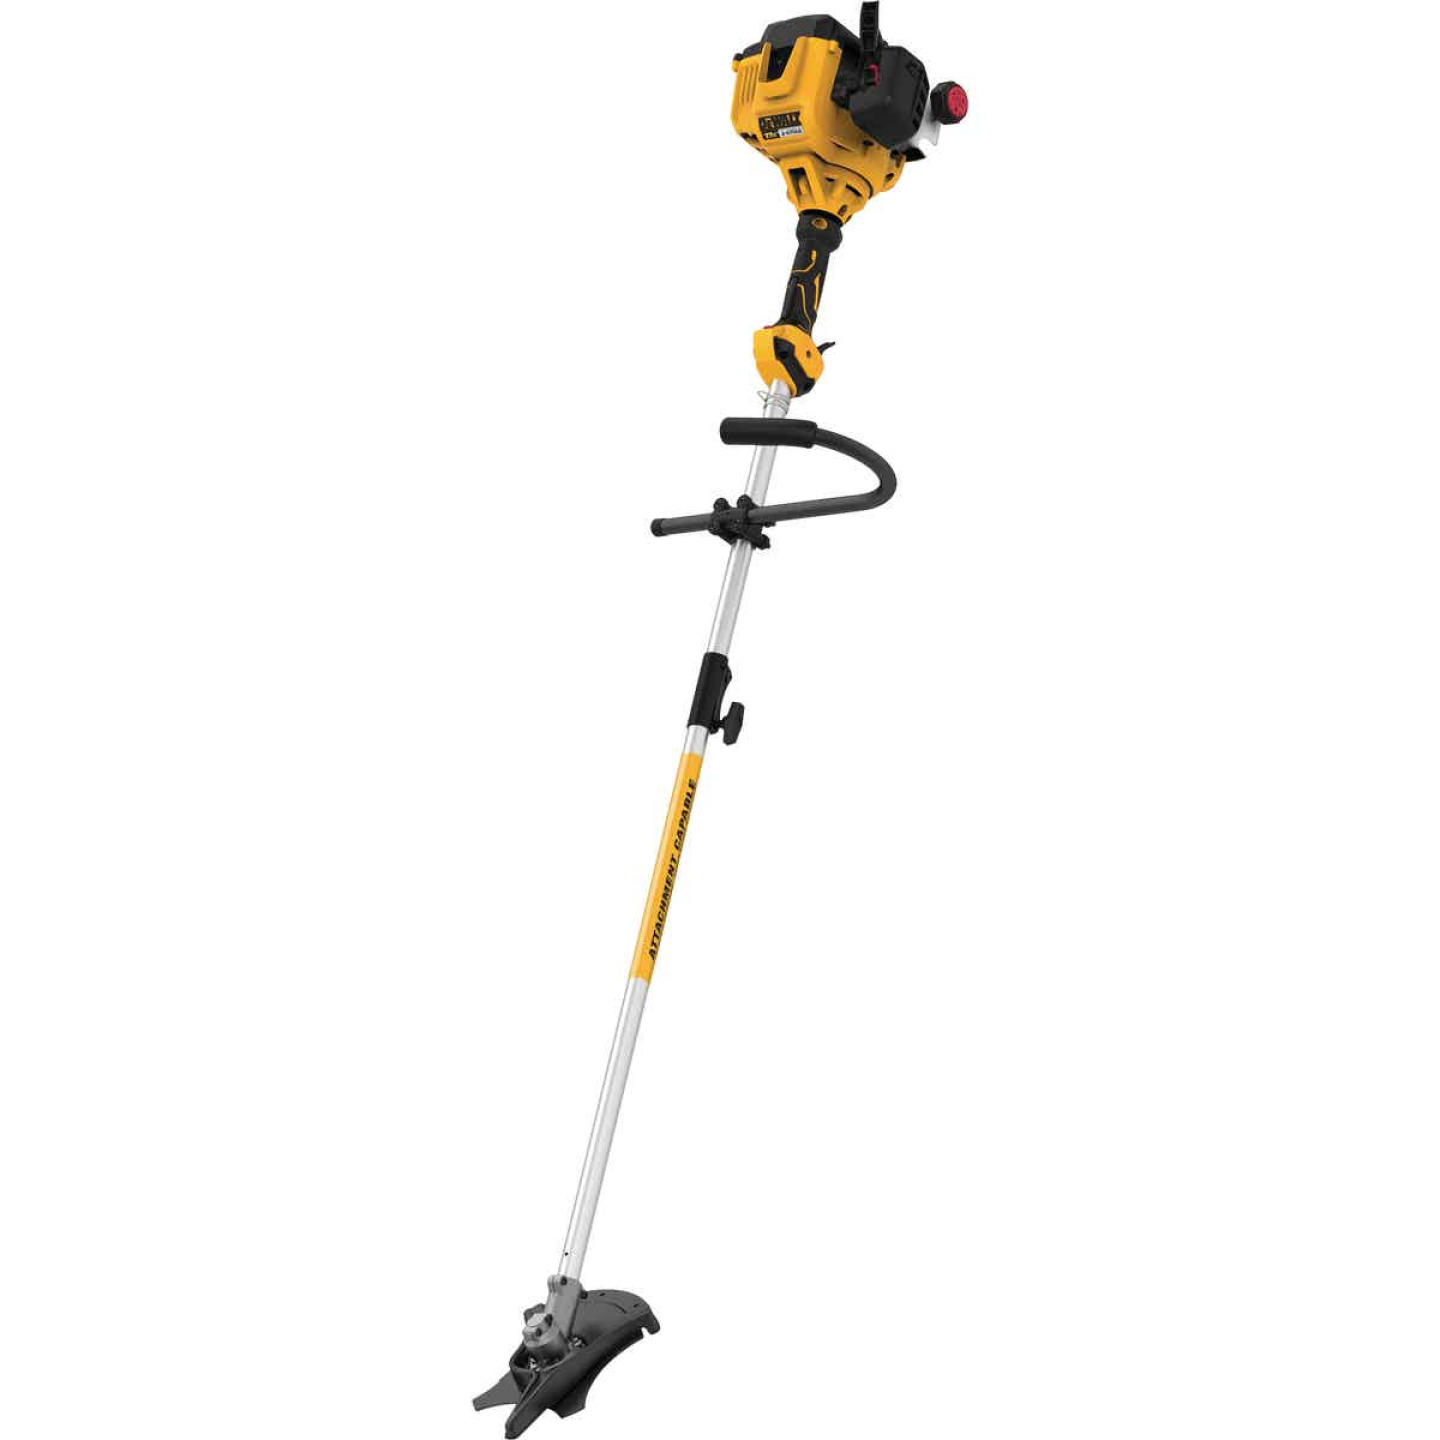 DeWalt Trimmer Plus 8 In. 27cc 2-Cycle Straight Shaft Brushcutter Trimmer Image 1